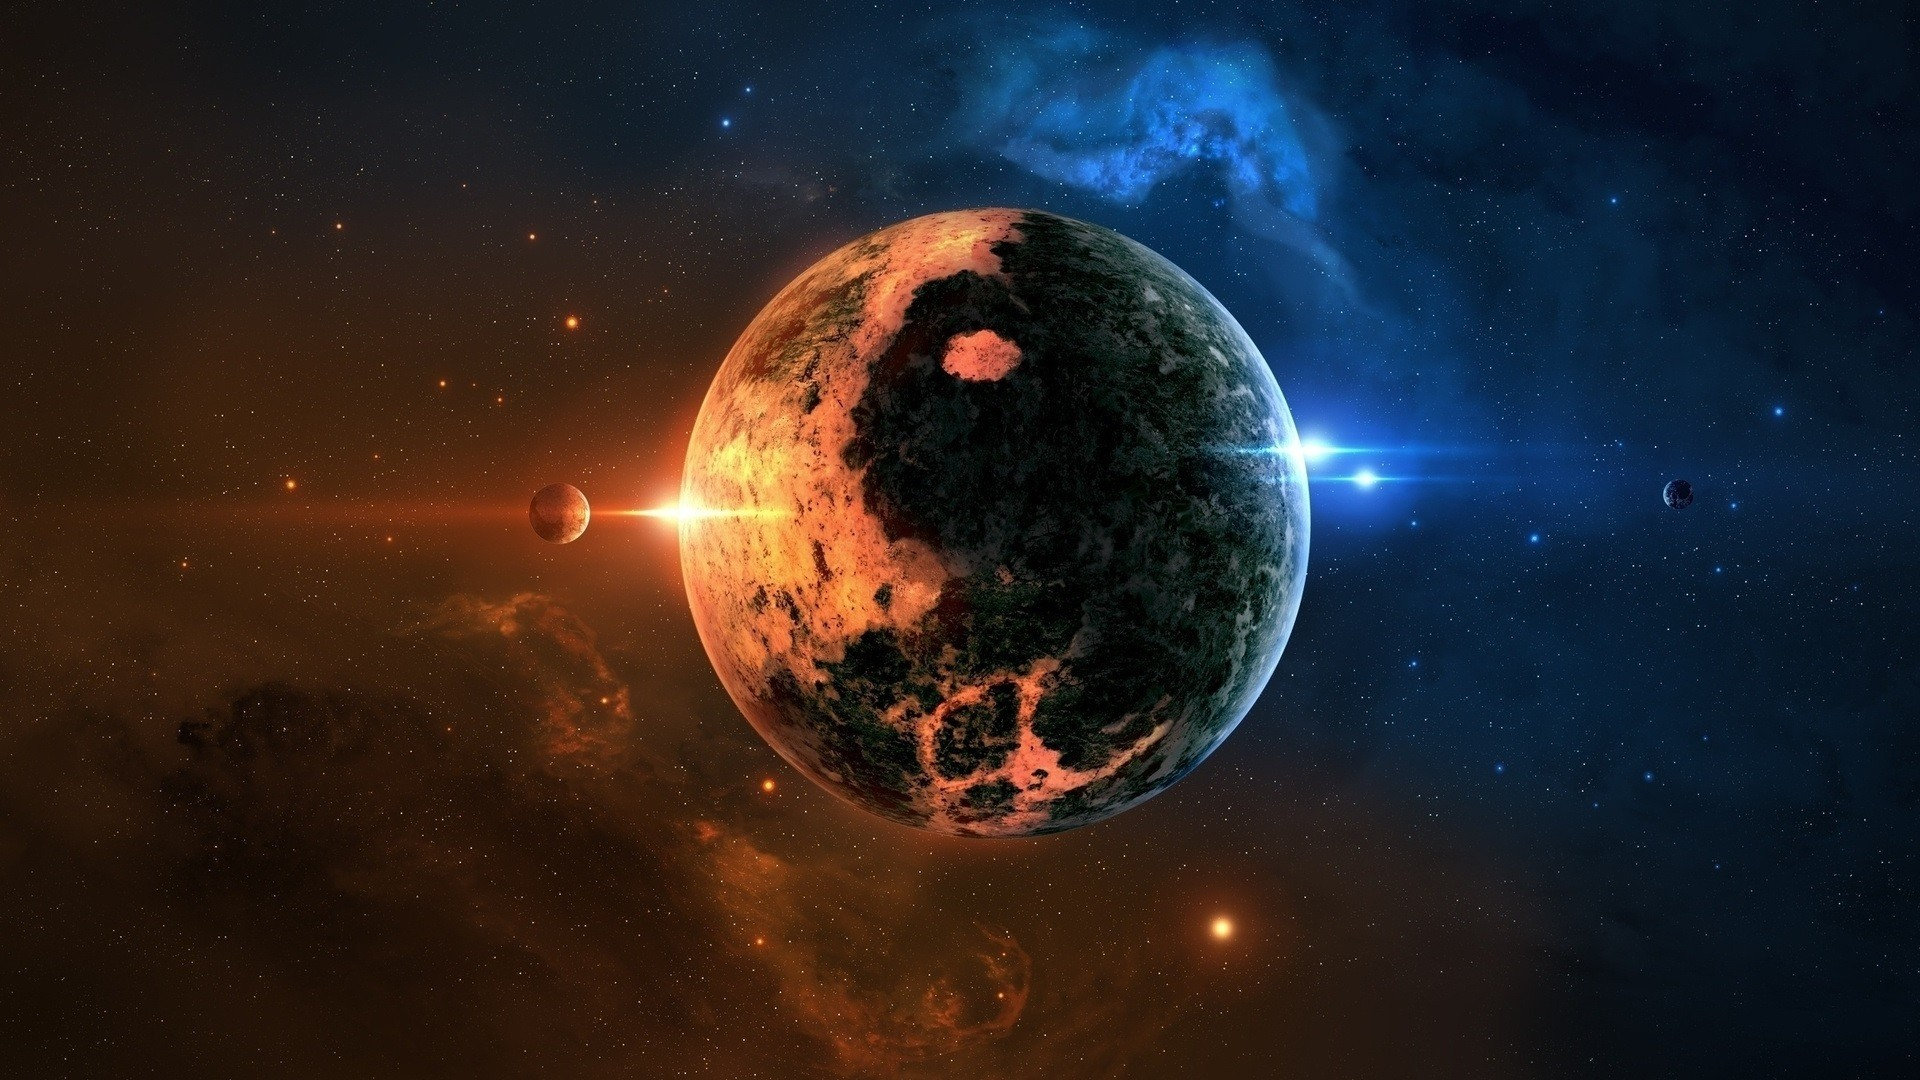 awesome space planet background Check more at https://www.finewallpapers.eu